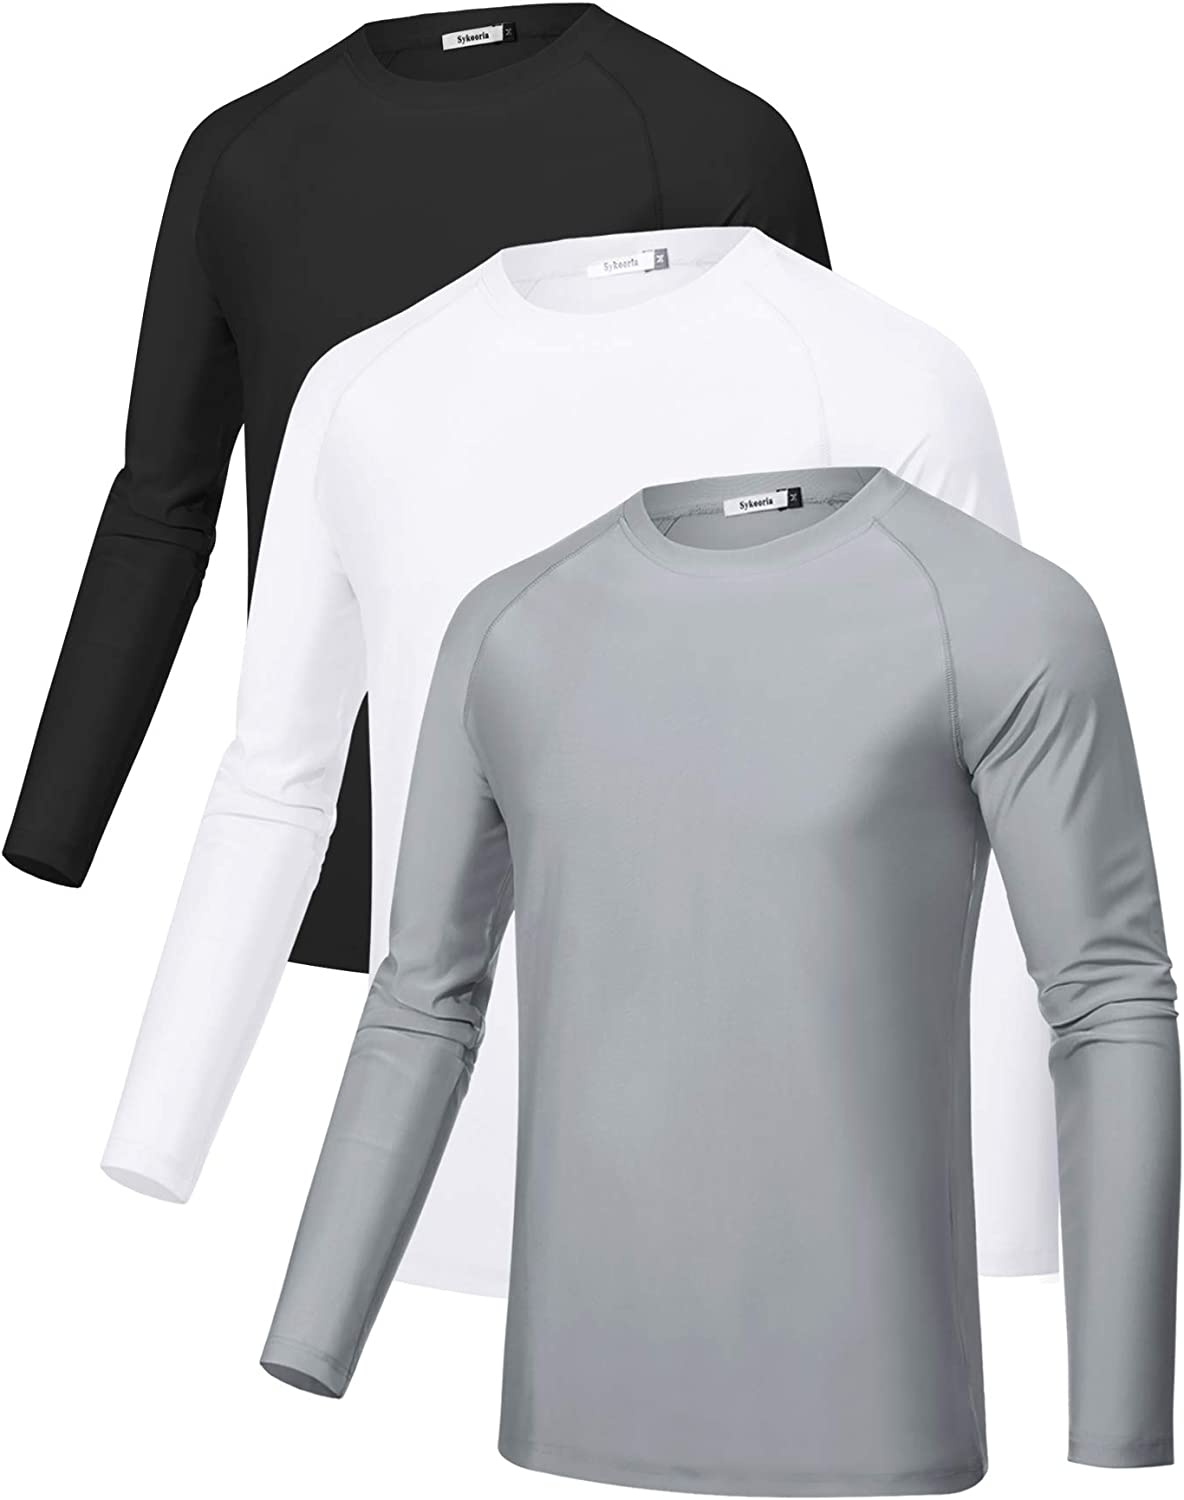 Sykooria Limited time trial price 3 Pack Men's 35% OFF Long Sleeve UPF UV Su T-Shirts Workout 50+